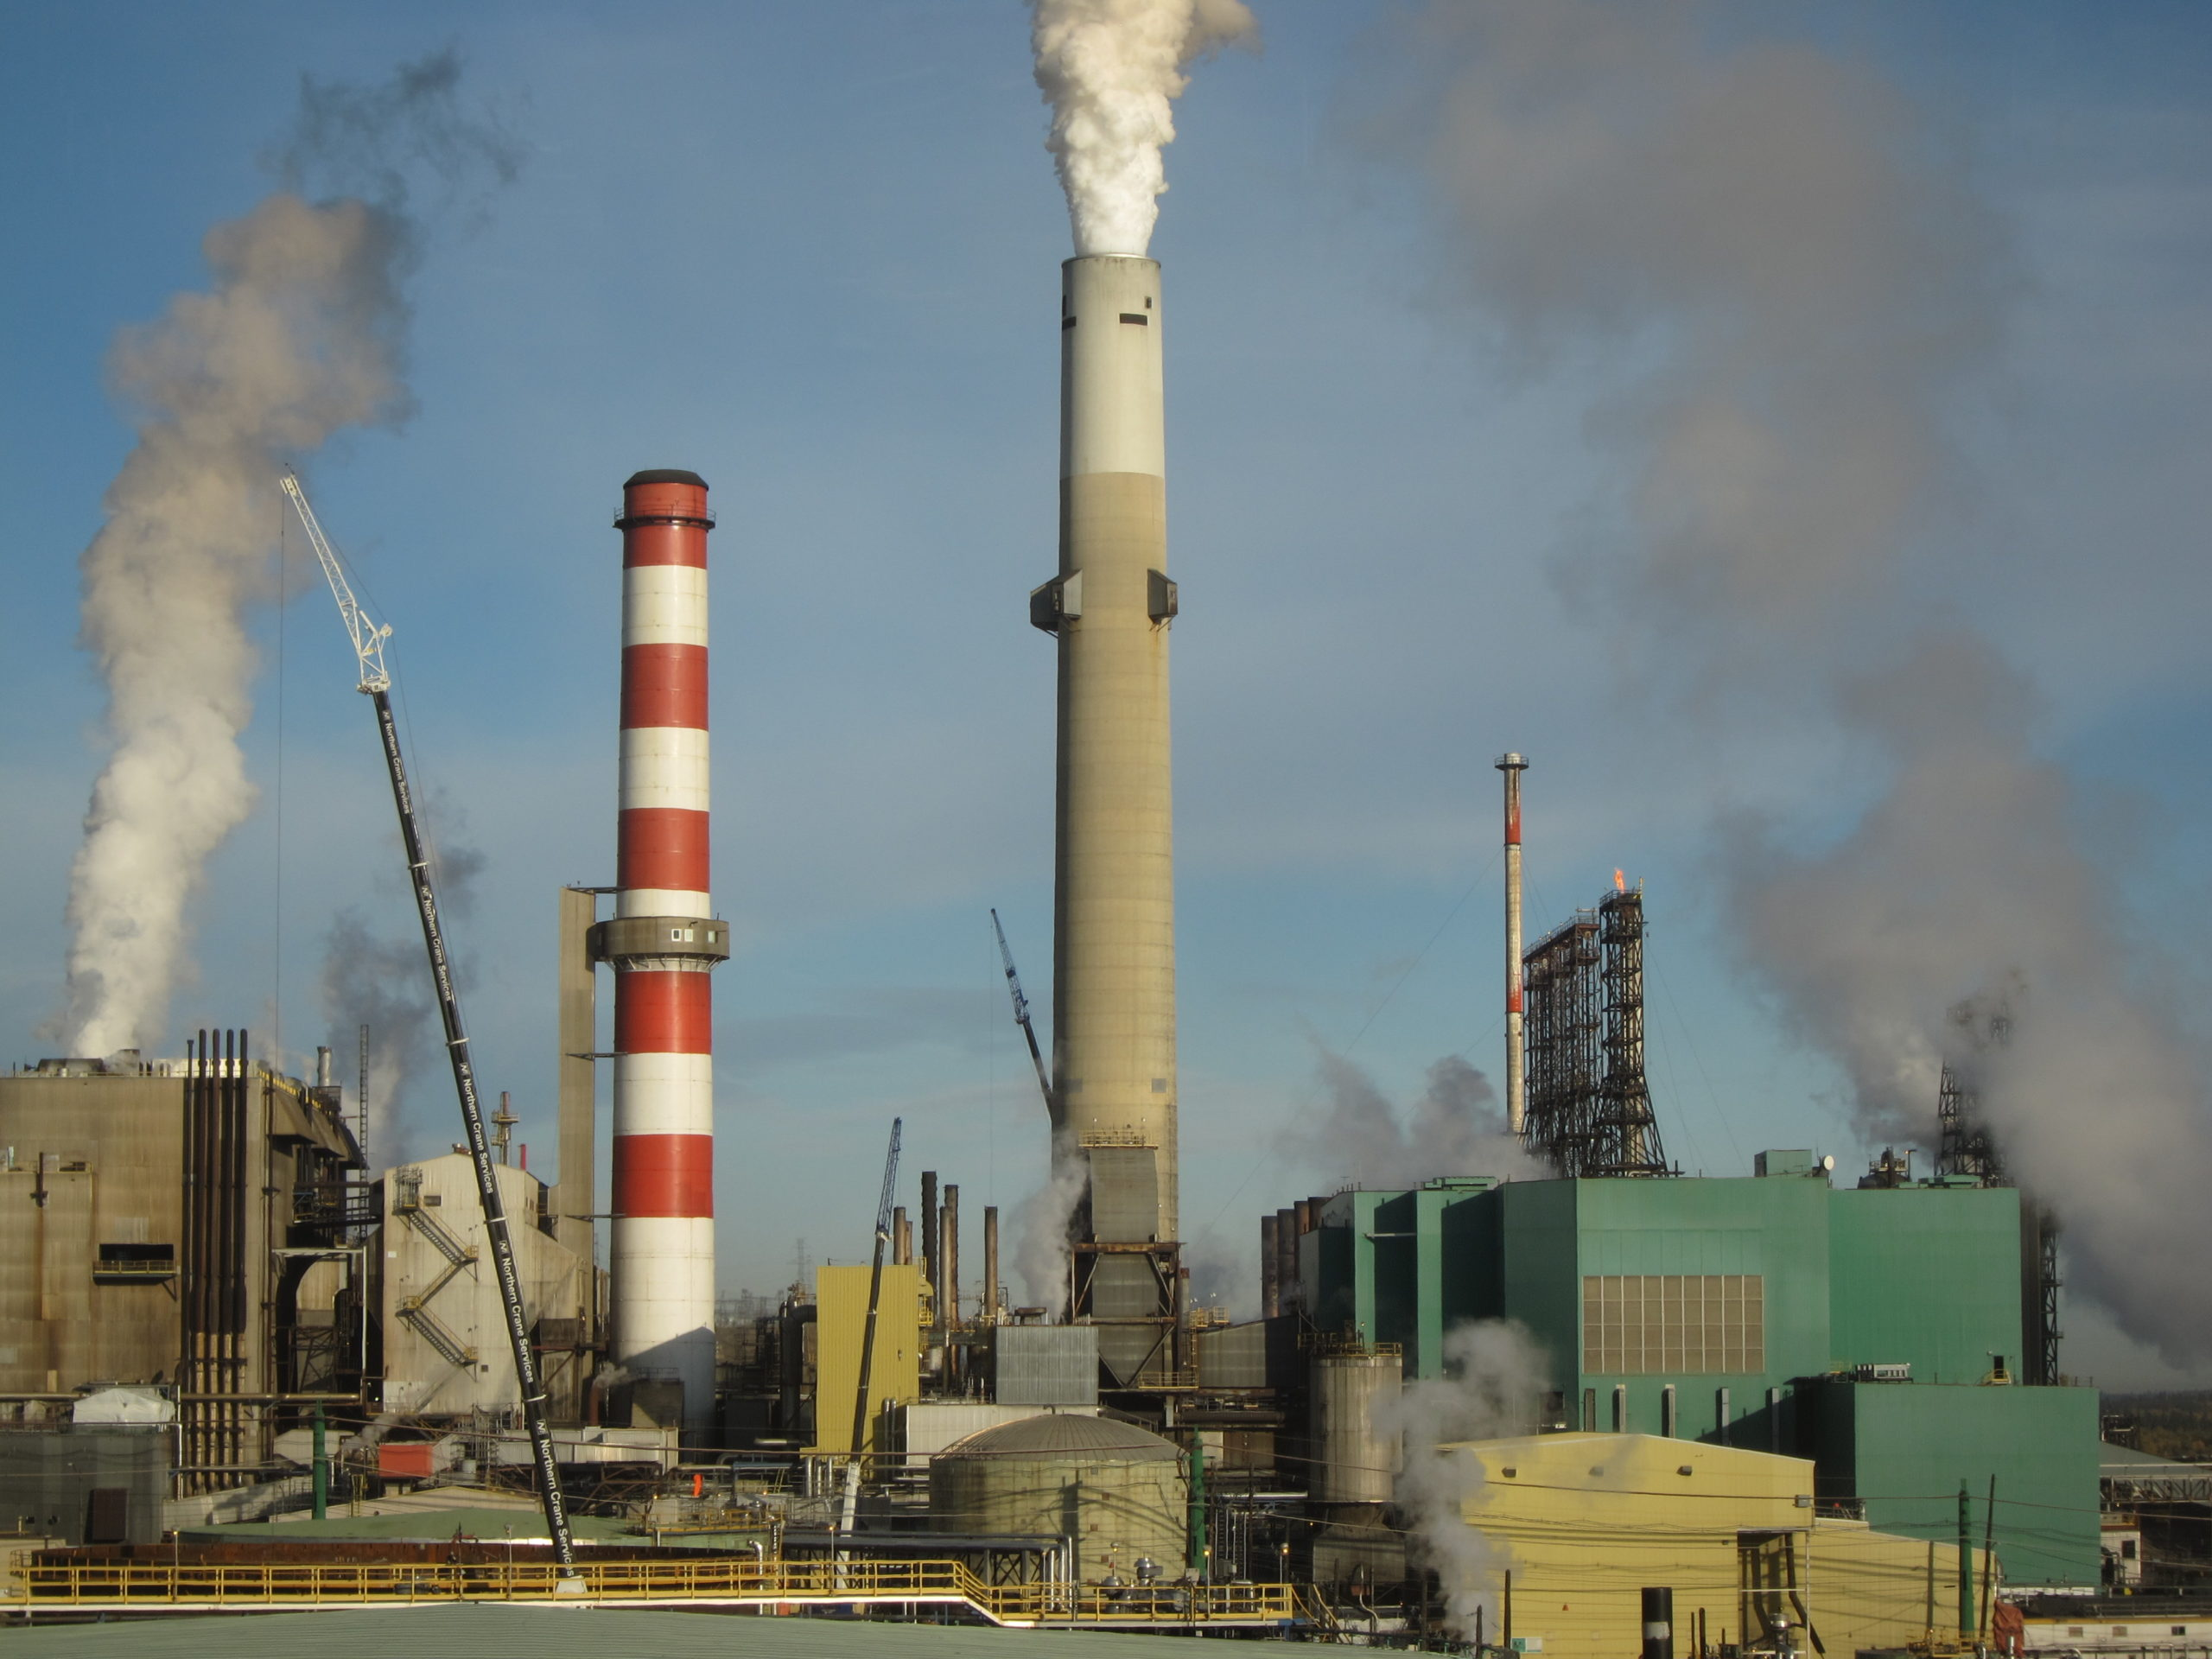 Suncor Looking to Tackle Carbon Impact Through Cogeneration Units